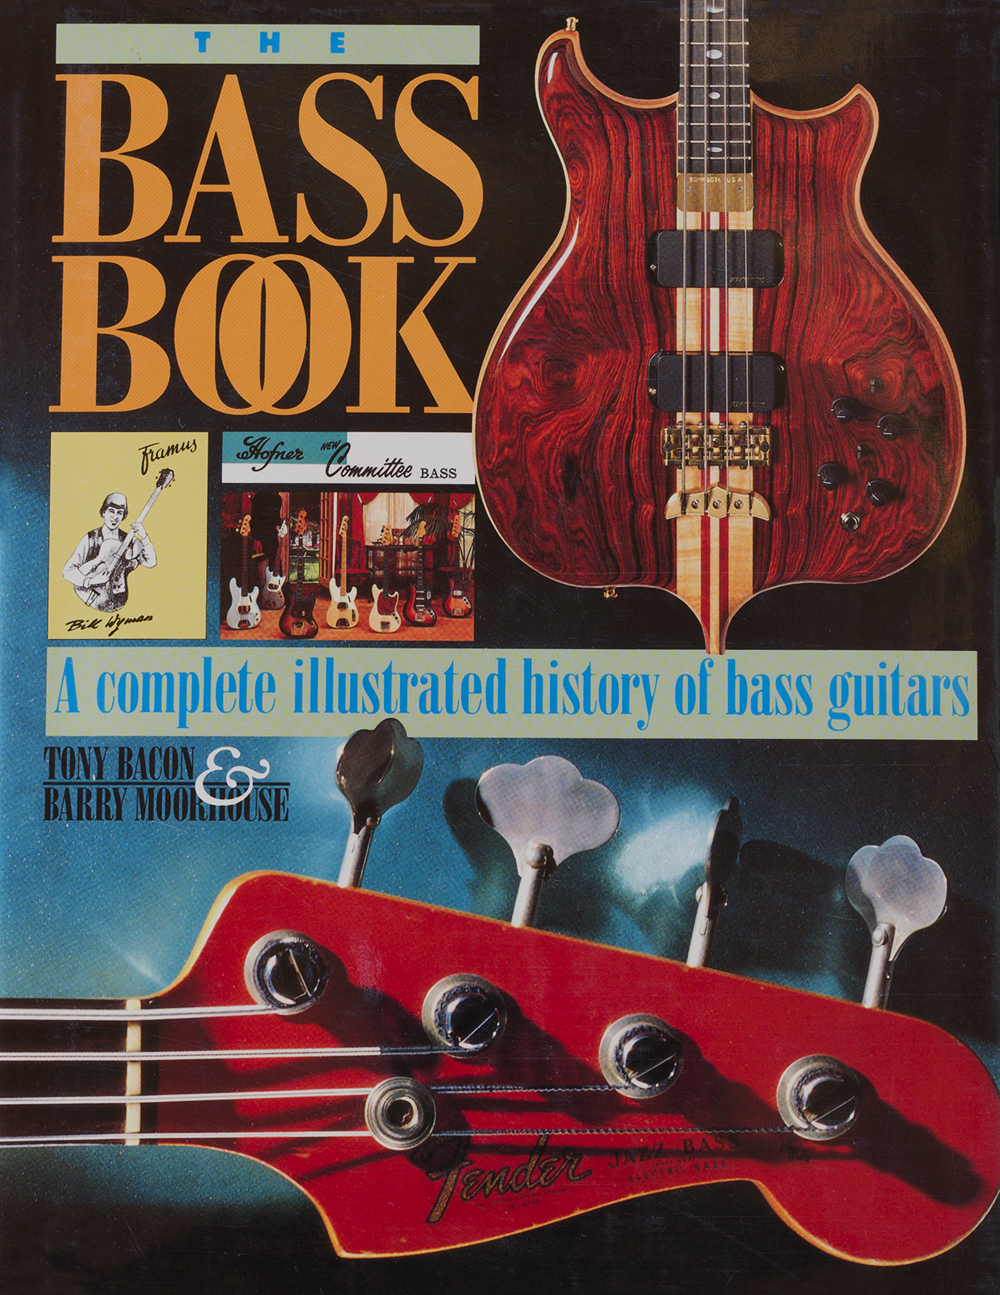 the bass book, by tony bacon, barry moorhouse